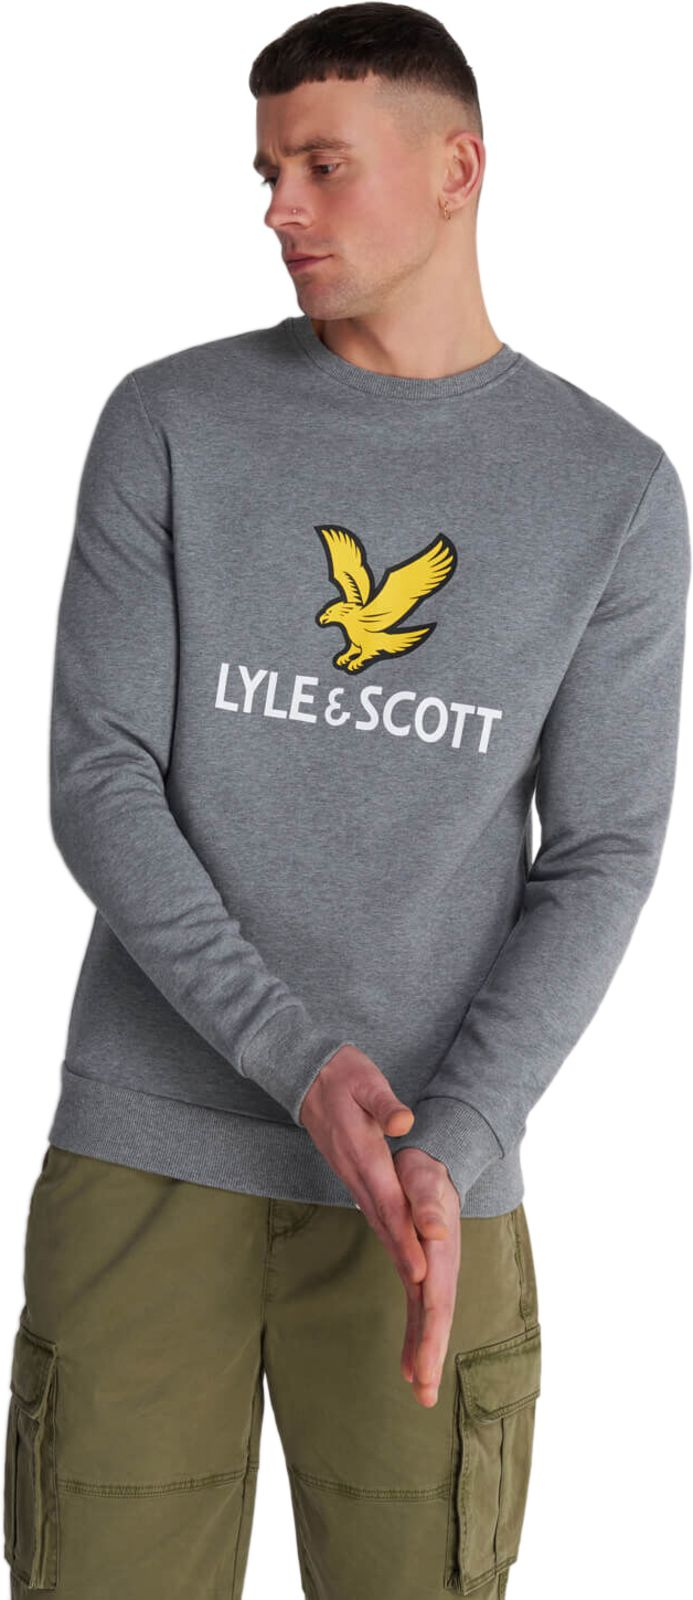 Lyle & Scott Logo Sweatshirt Grey